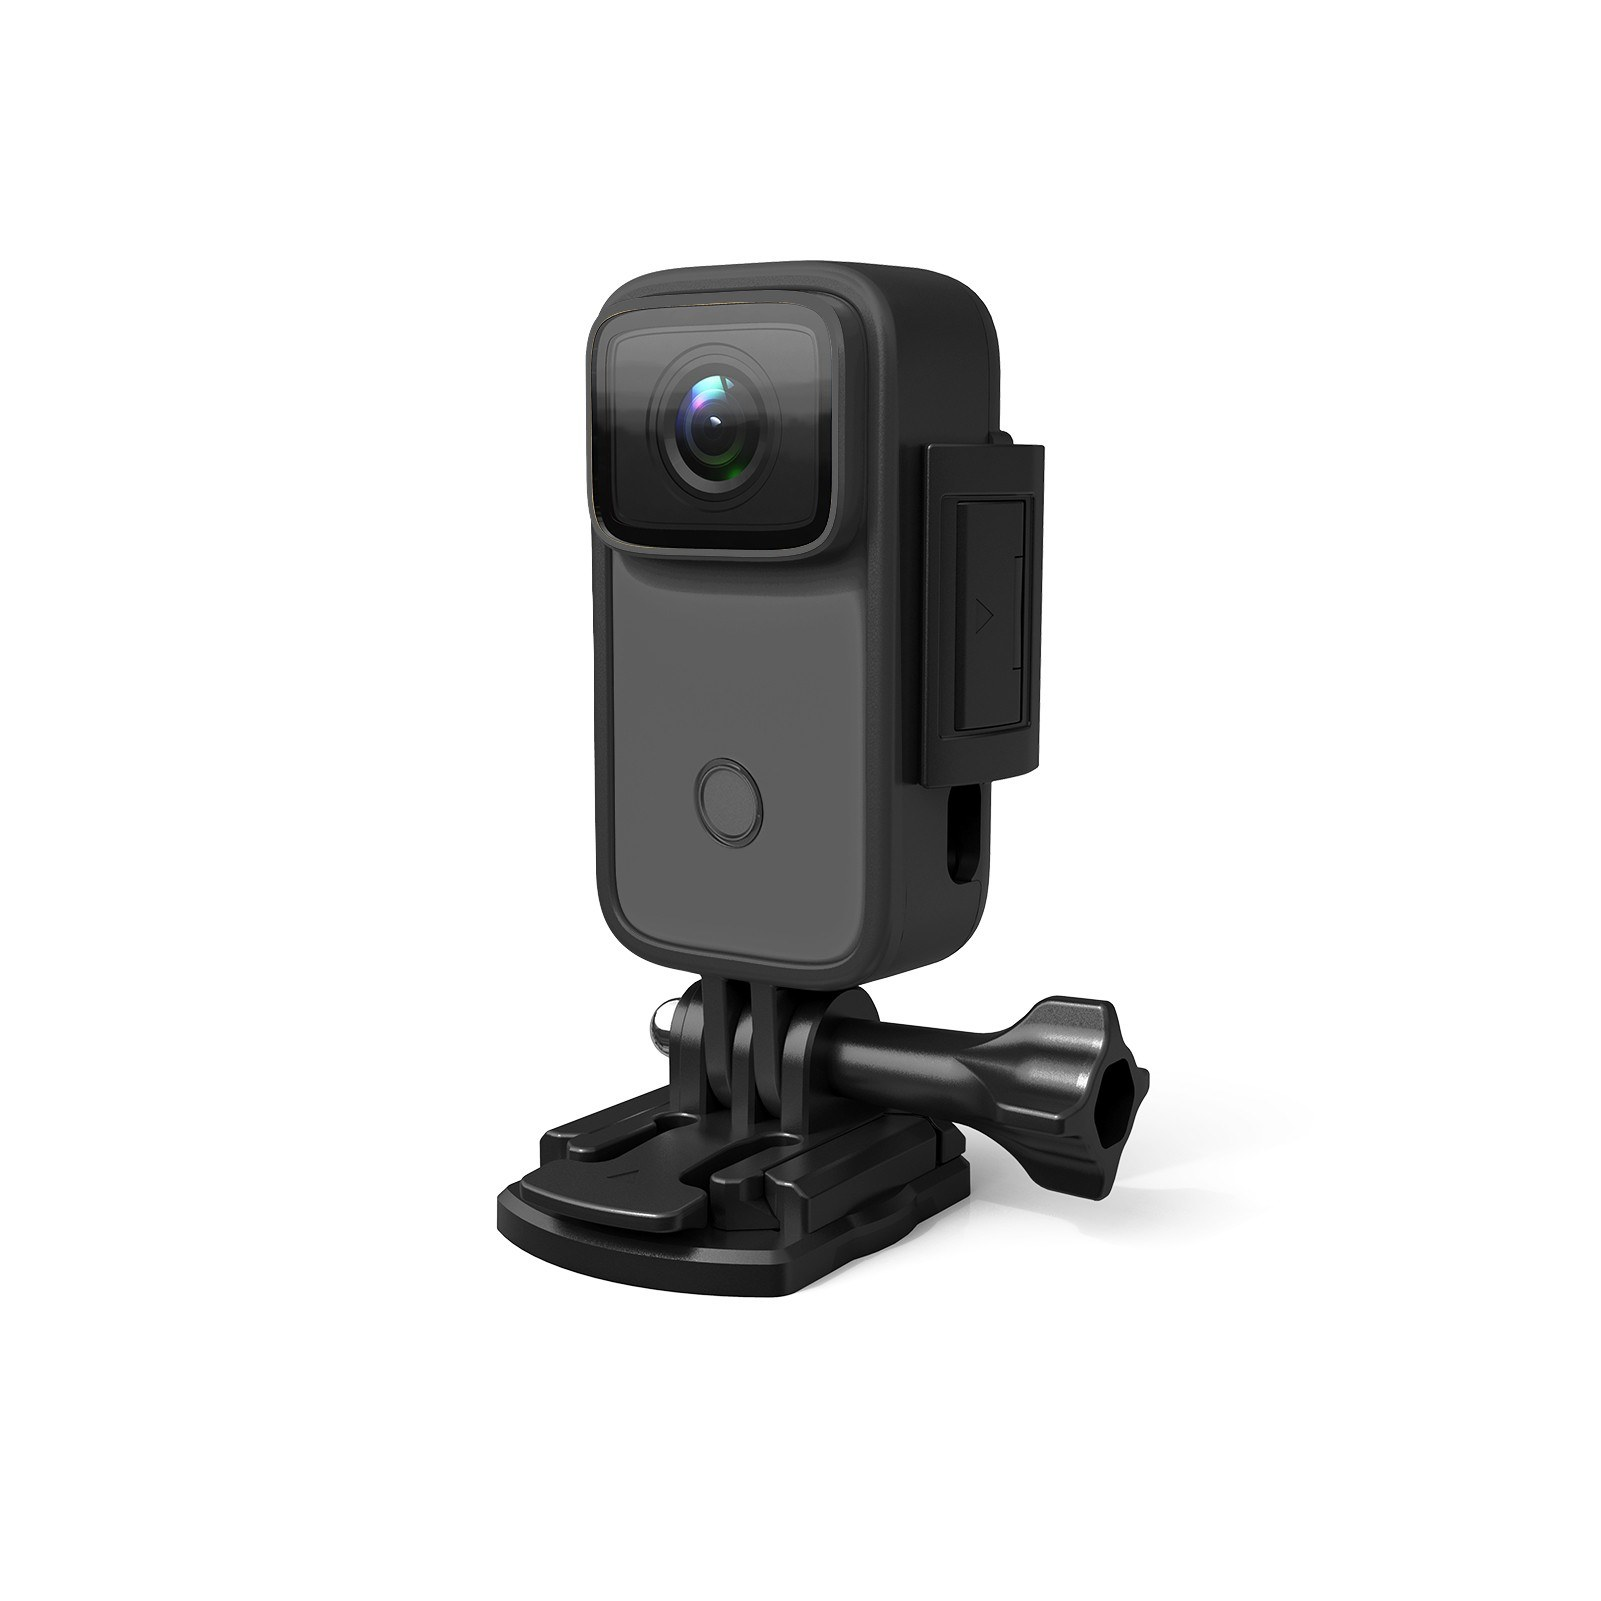 Tomtop - 57% OFF SJCAM C200 4K Mini WiFi Action Camera with 1.28 Inch IPS Screen, Free Shipping $89.99